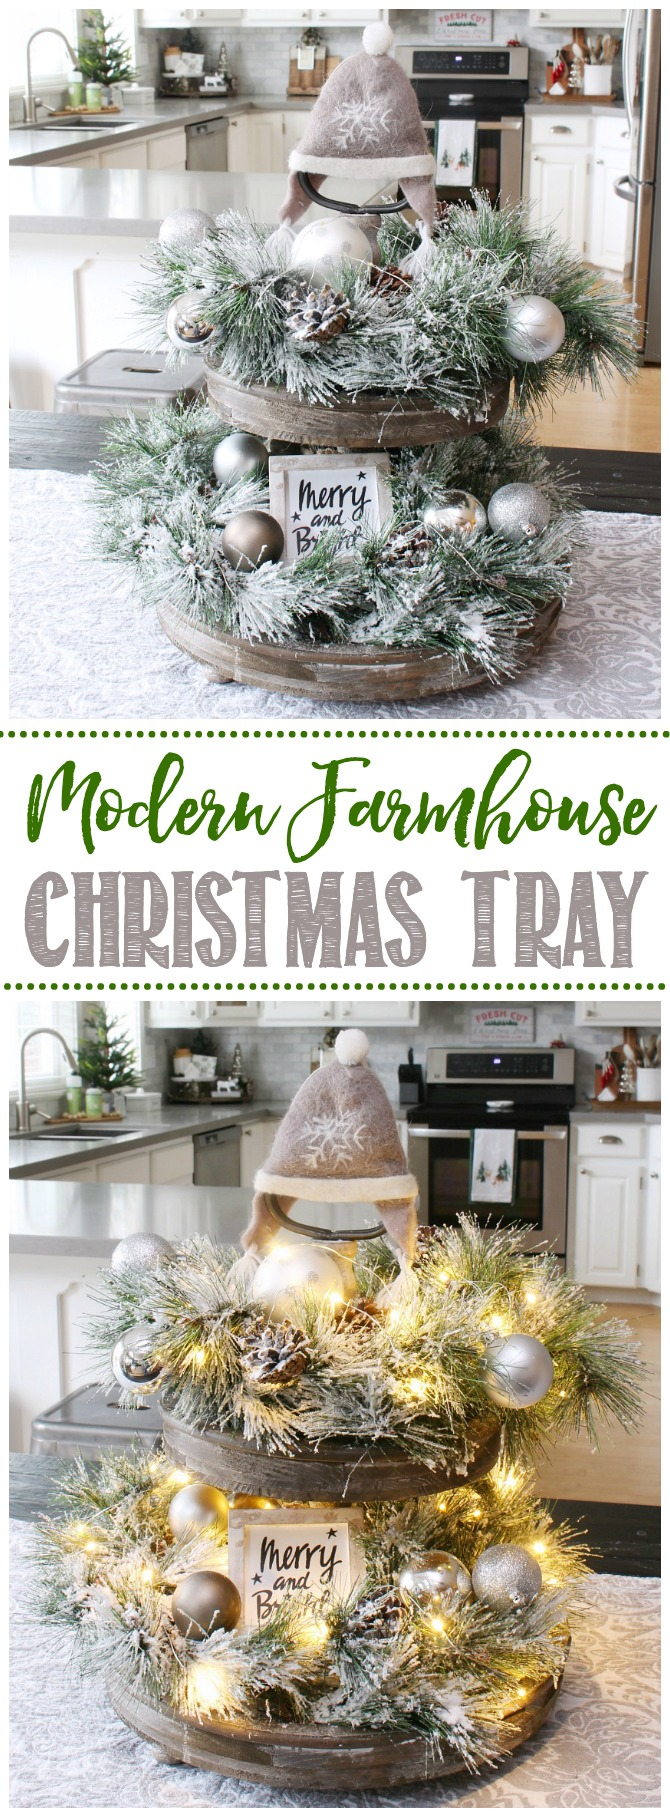 DIY farmhouse Christmas tray using flocked greenery and twinkle lights.